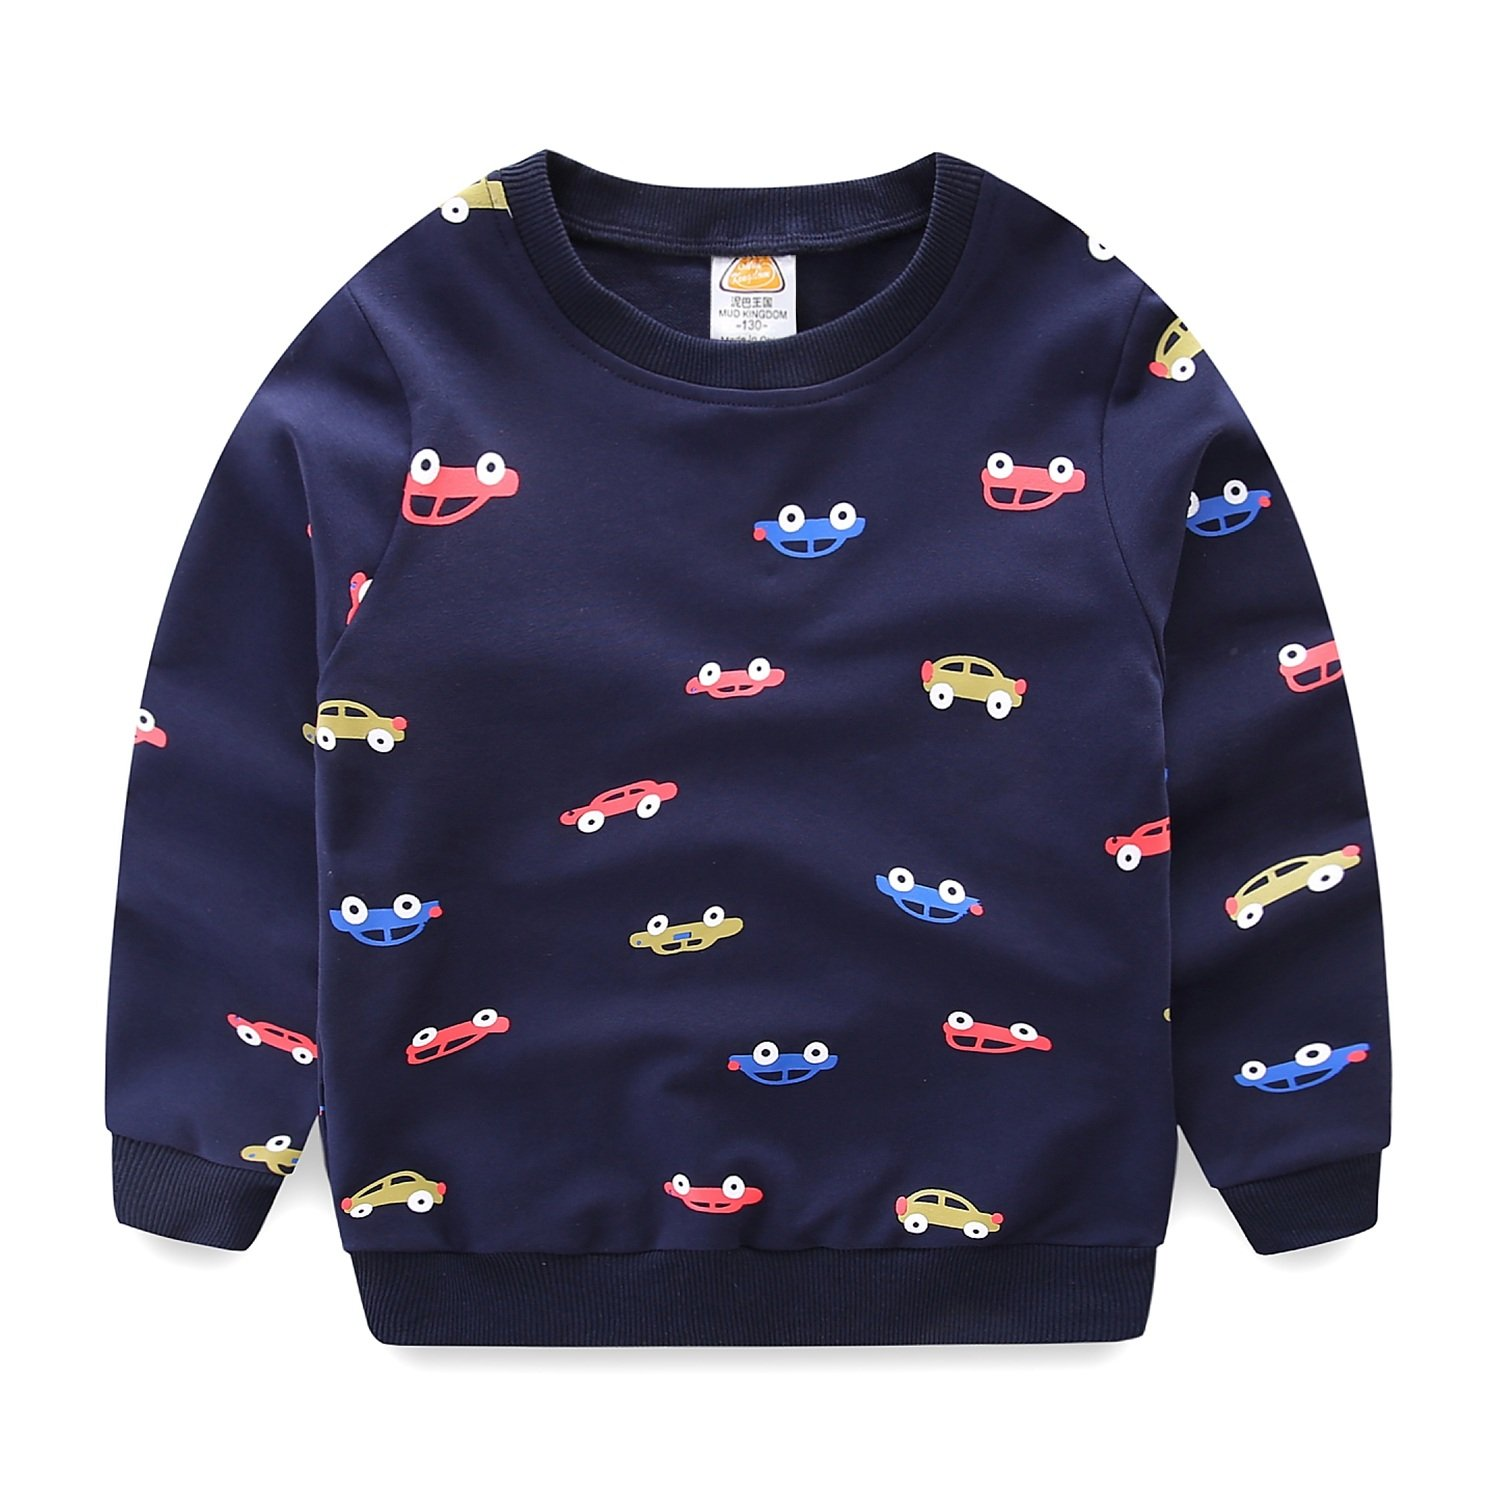 Mud Kingdom Boys Cars Sweatshirts Cute Long Sleeve Tops